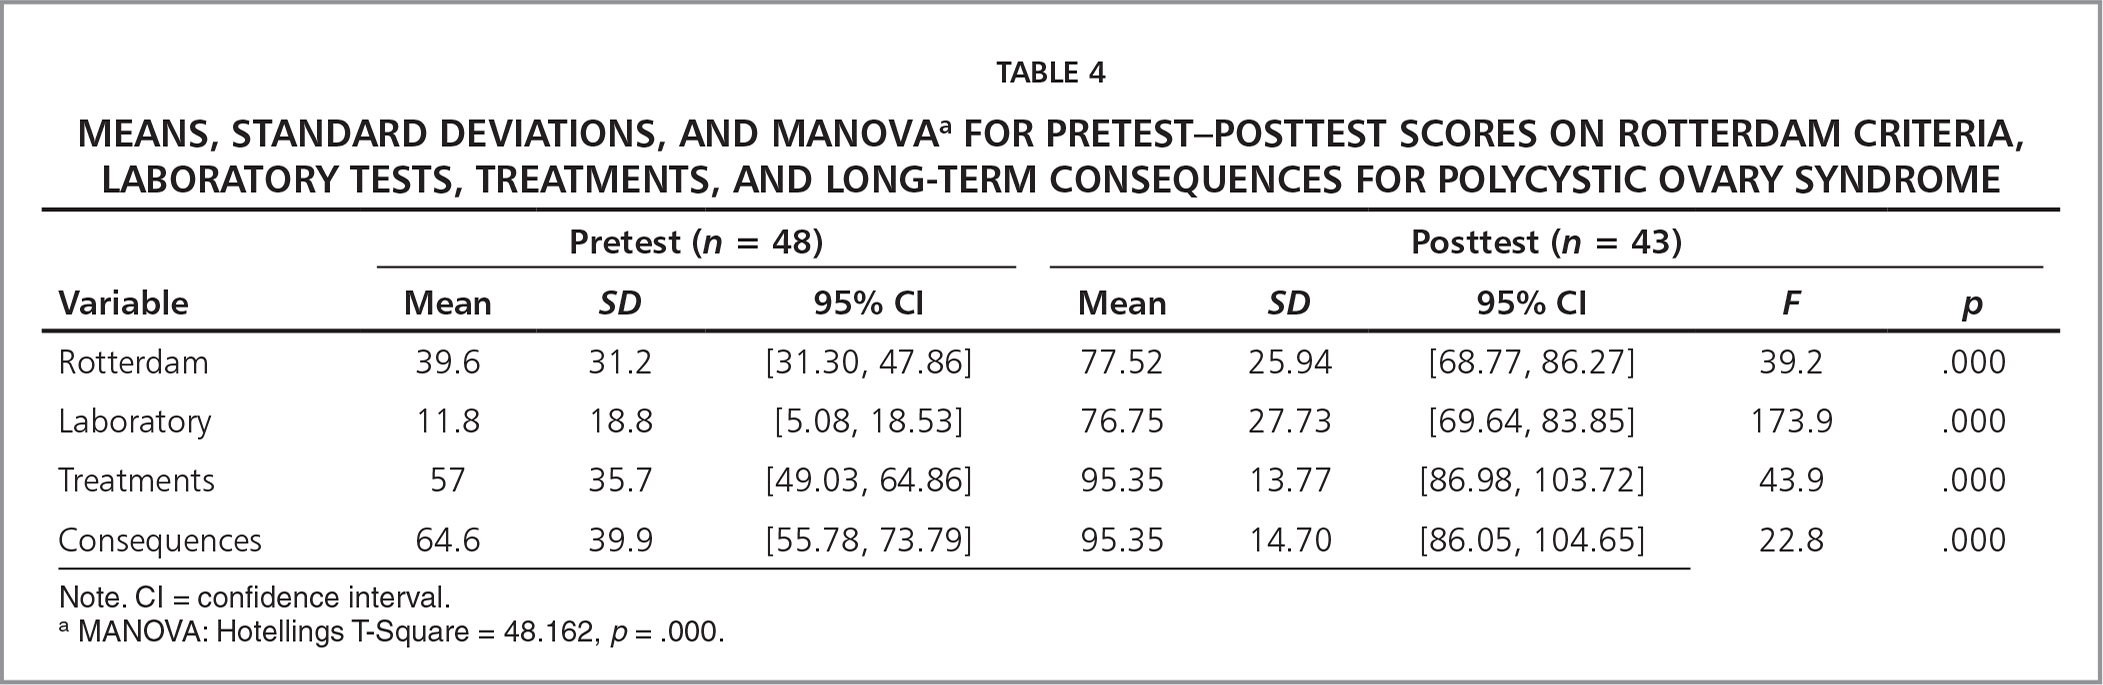 Means, Standard Deviations, and Manovaa for Pretest–Posttest Scores on Rotterdam Criteria, Laboratory Tests, Treatments, and Long-Term Consequences for Polycystic Ovary Syndrome